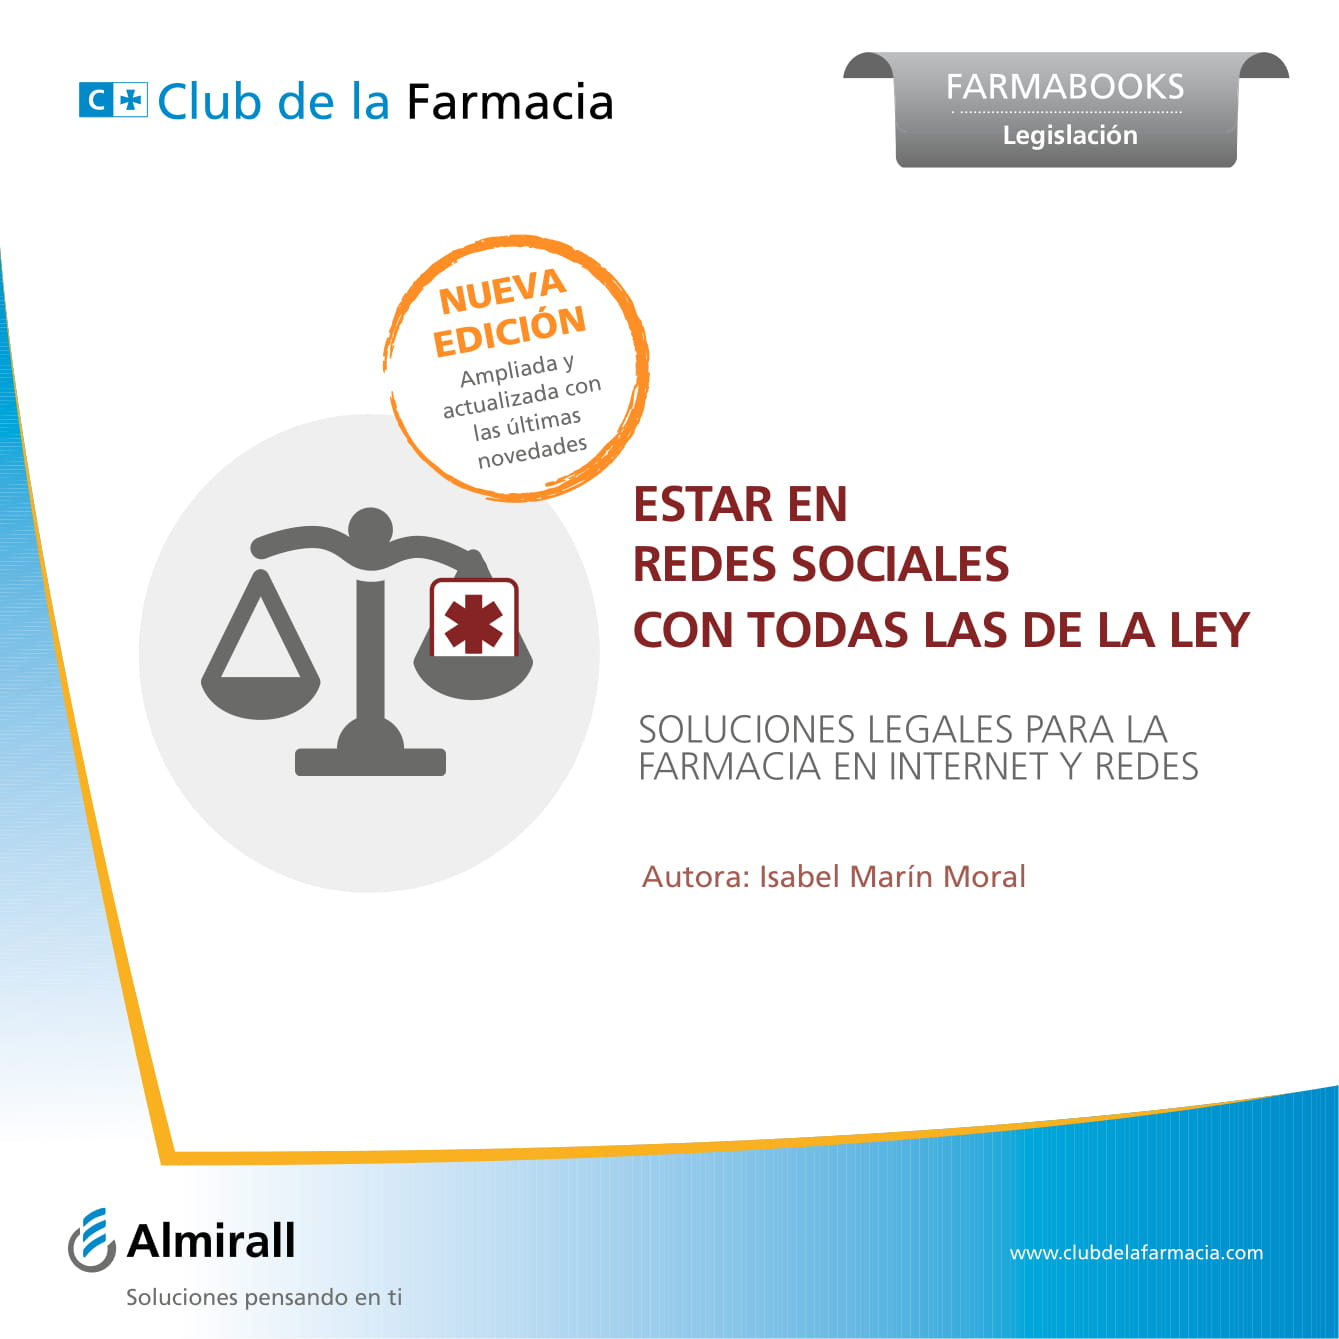 Ebooks-Club de la Farmacia-42.jpg